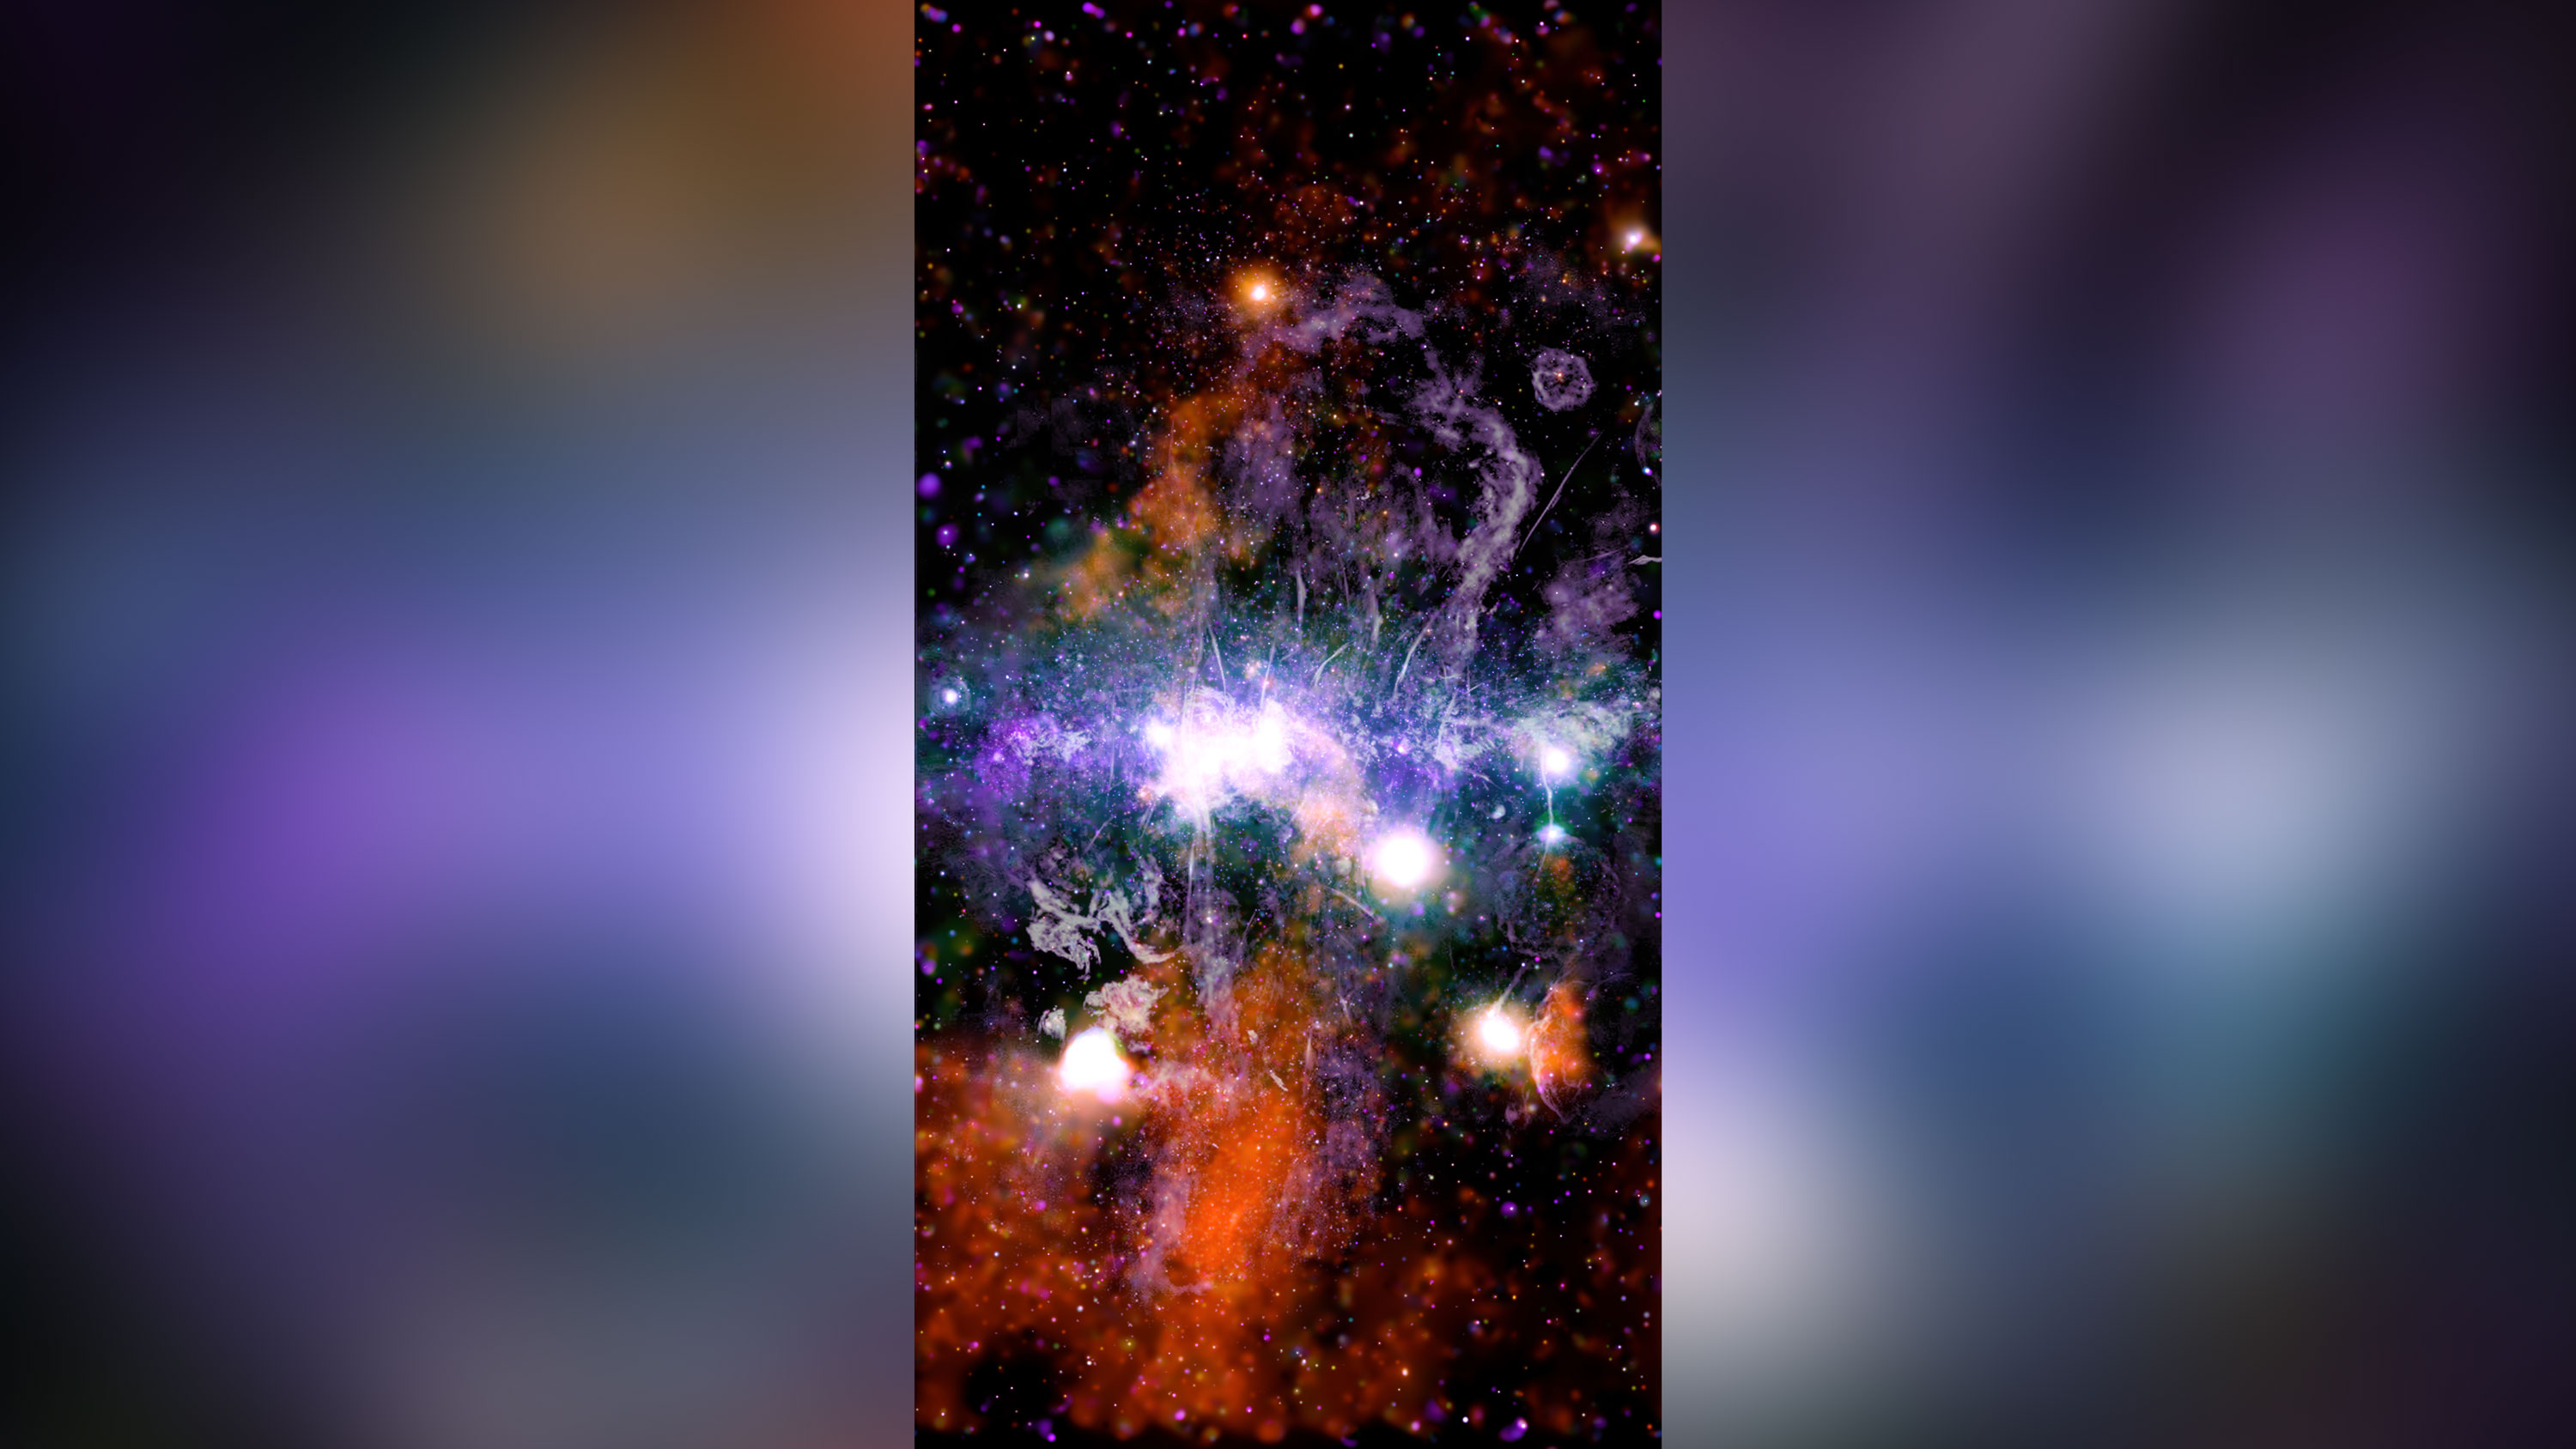 New NASA photo shows our galaxy's 'violent energy'